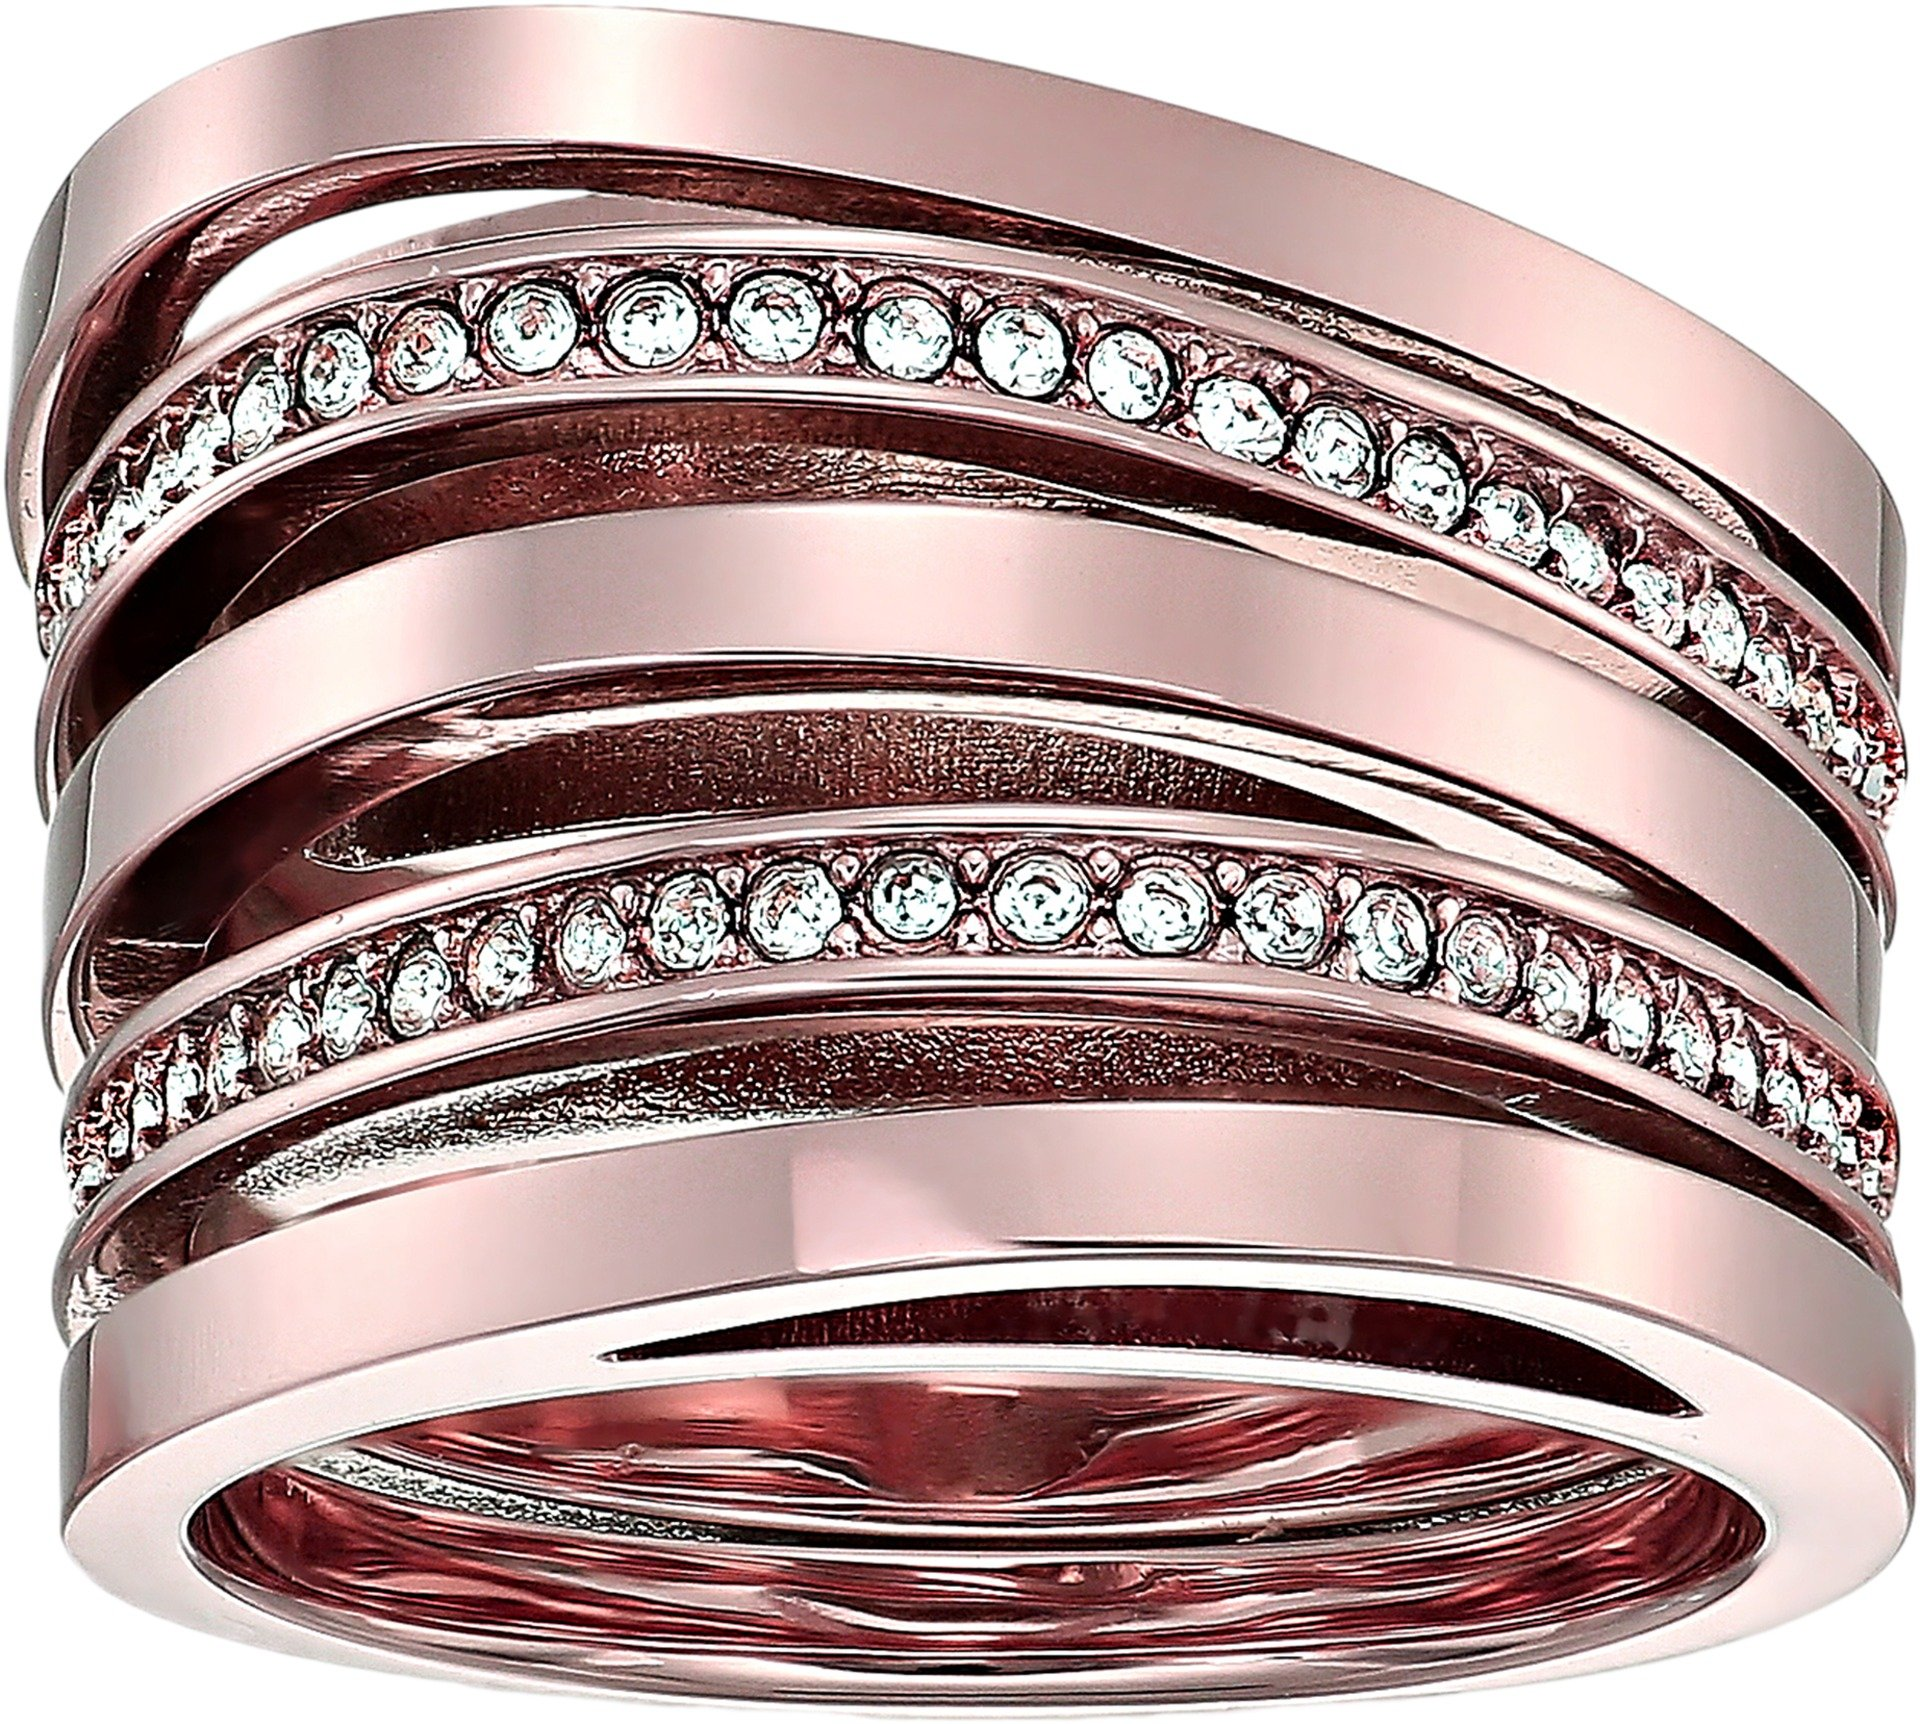 Michael Kors Women's Brilliance Stacked Pave Ring Rose Gold 8